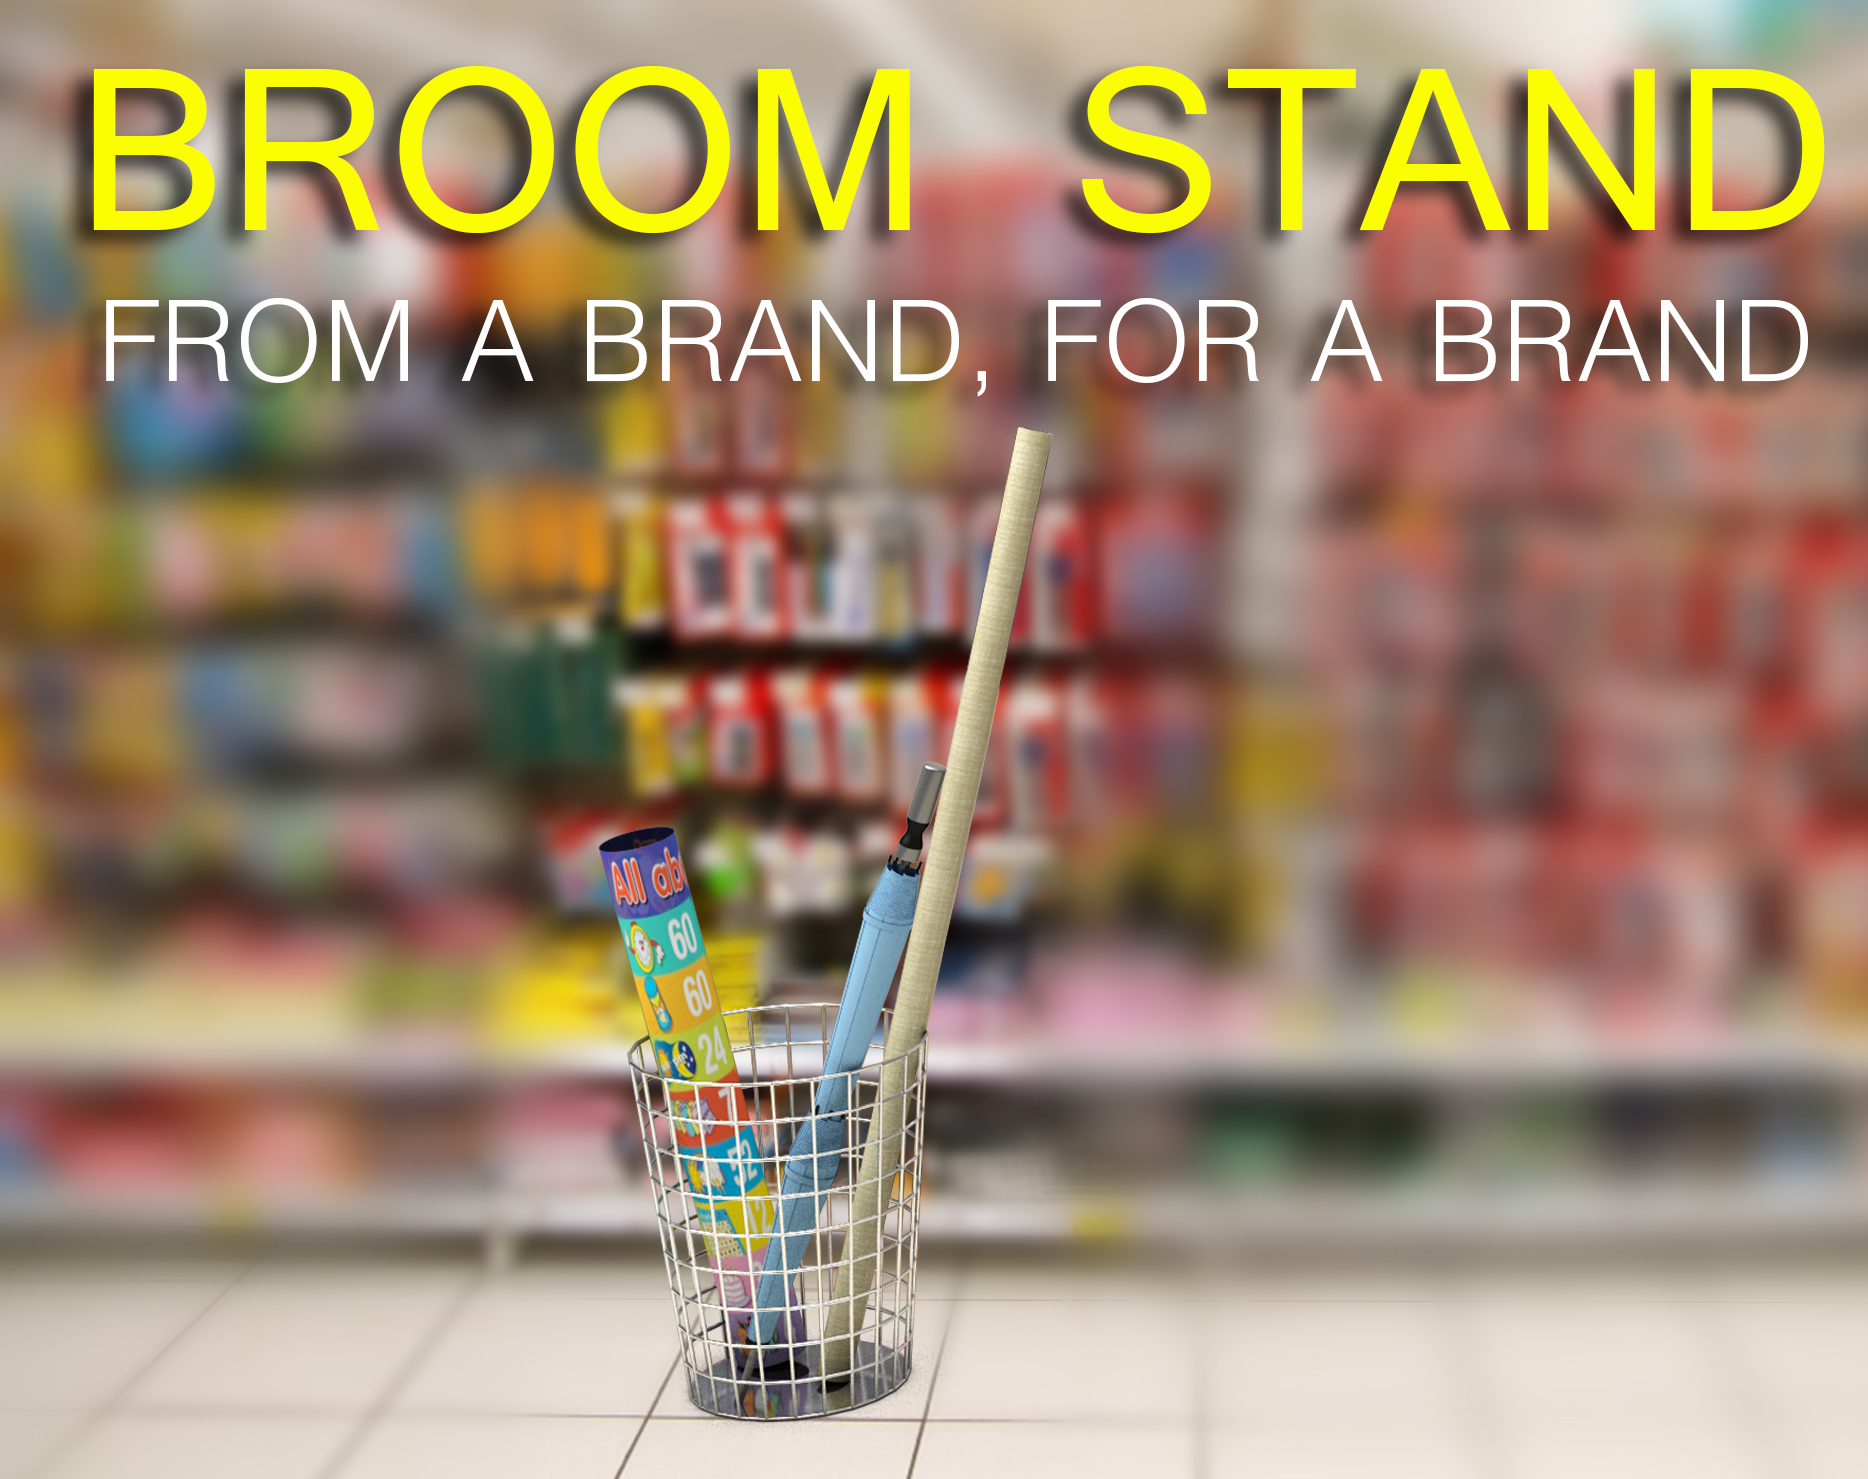 BROOM STAND- FROM A BRAND, FOR A BRAND